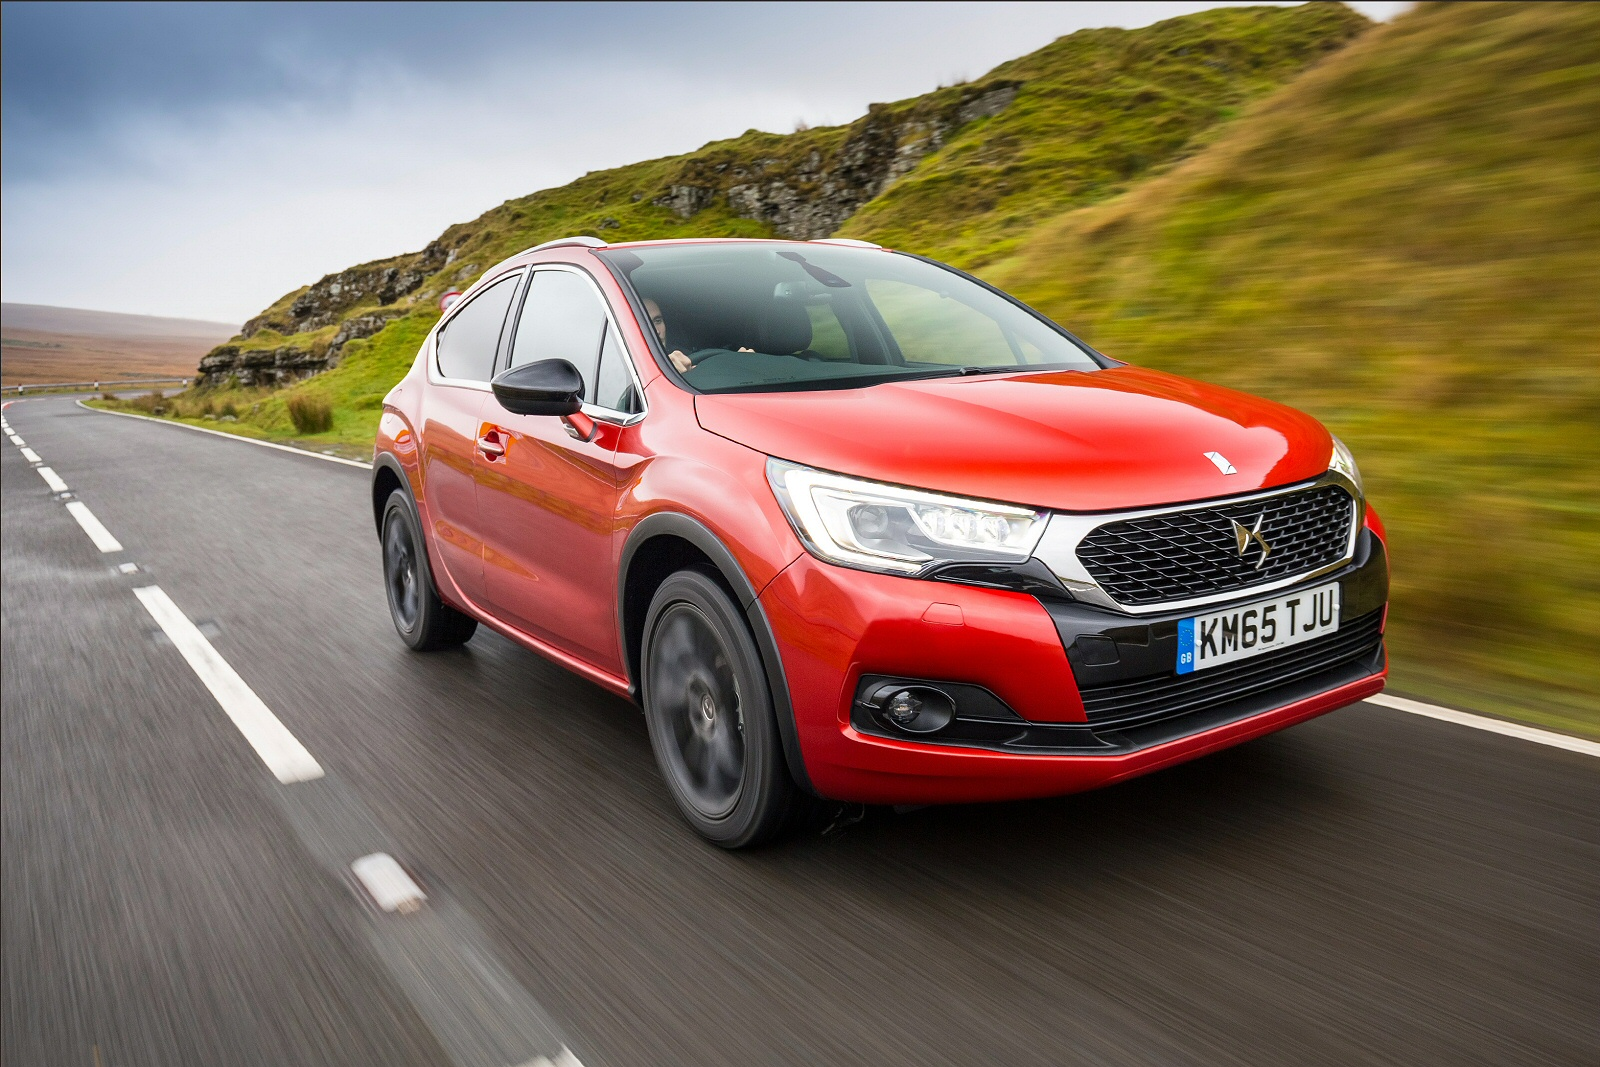 new ds 4 1 2 puretech crossback 5dr petrol hatchback for sale bristol street. Black Bedroom Furniture Sets. Home Design Ideas